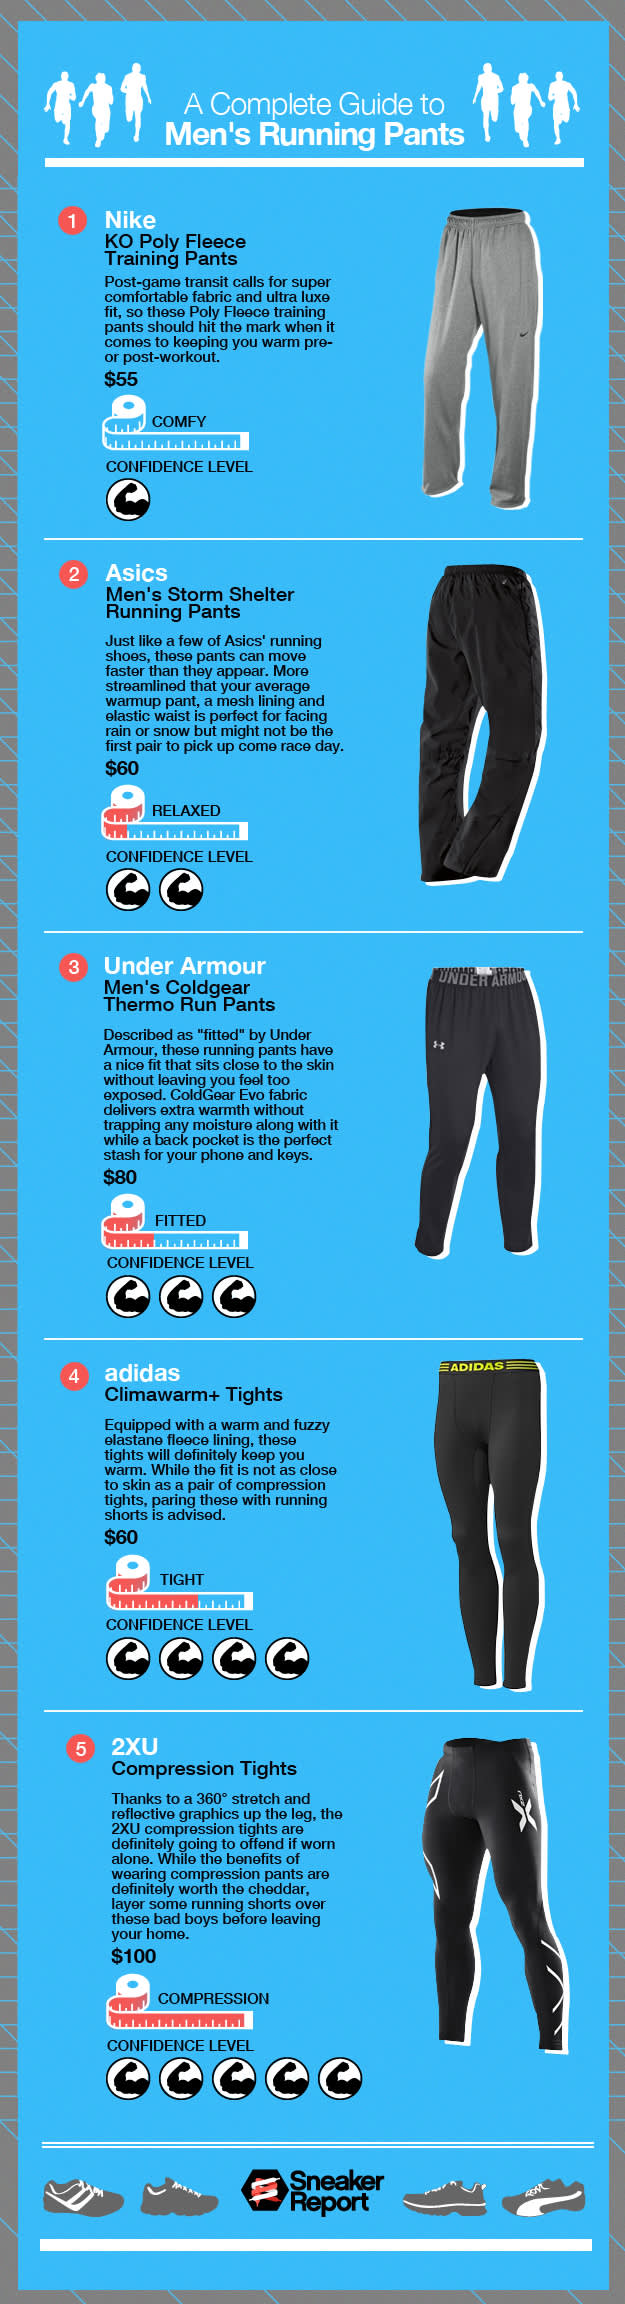 IllustratedGuide_Men_sRunningPants